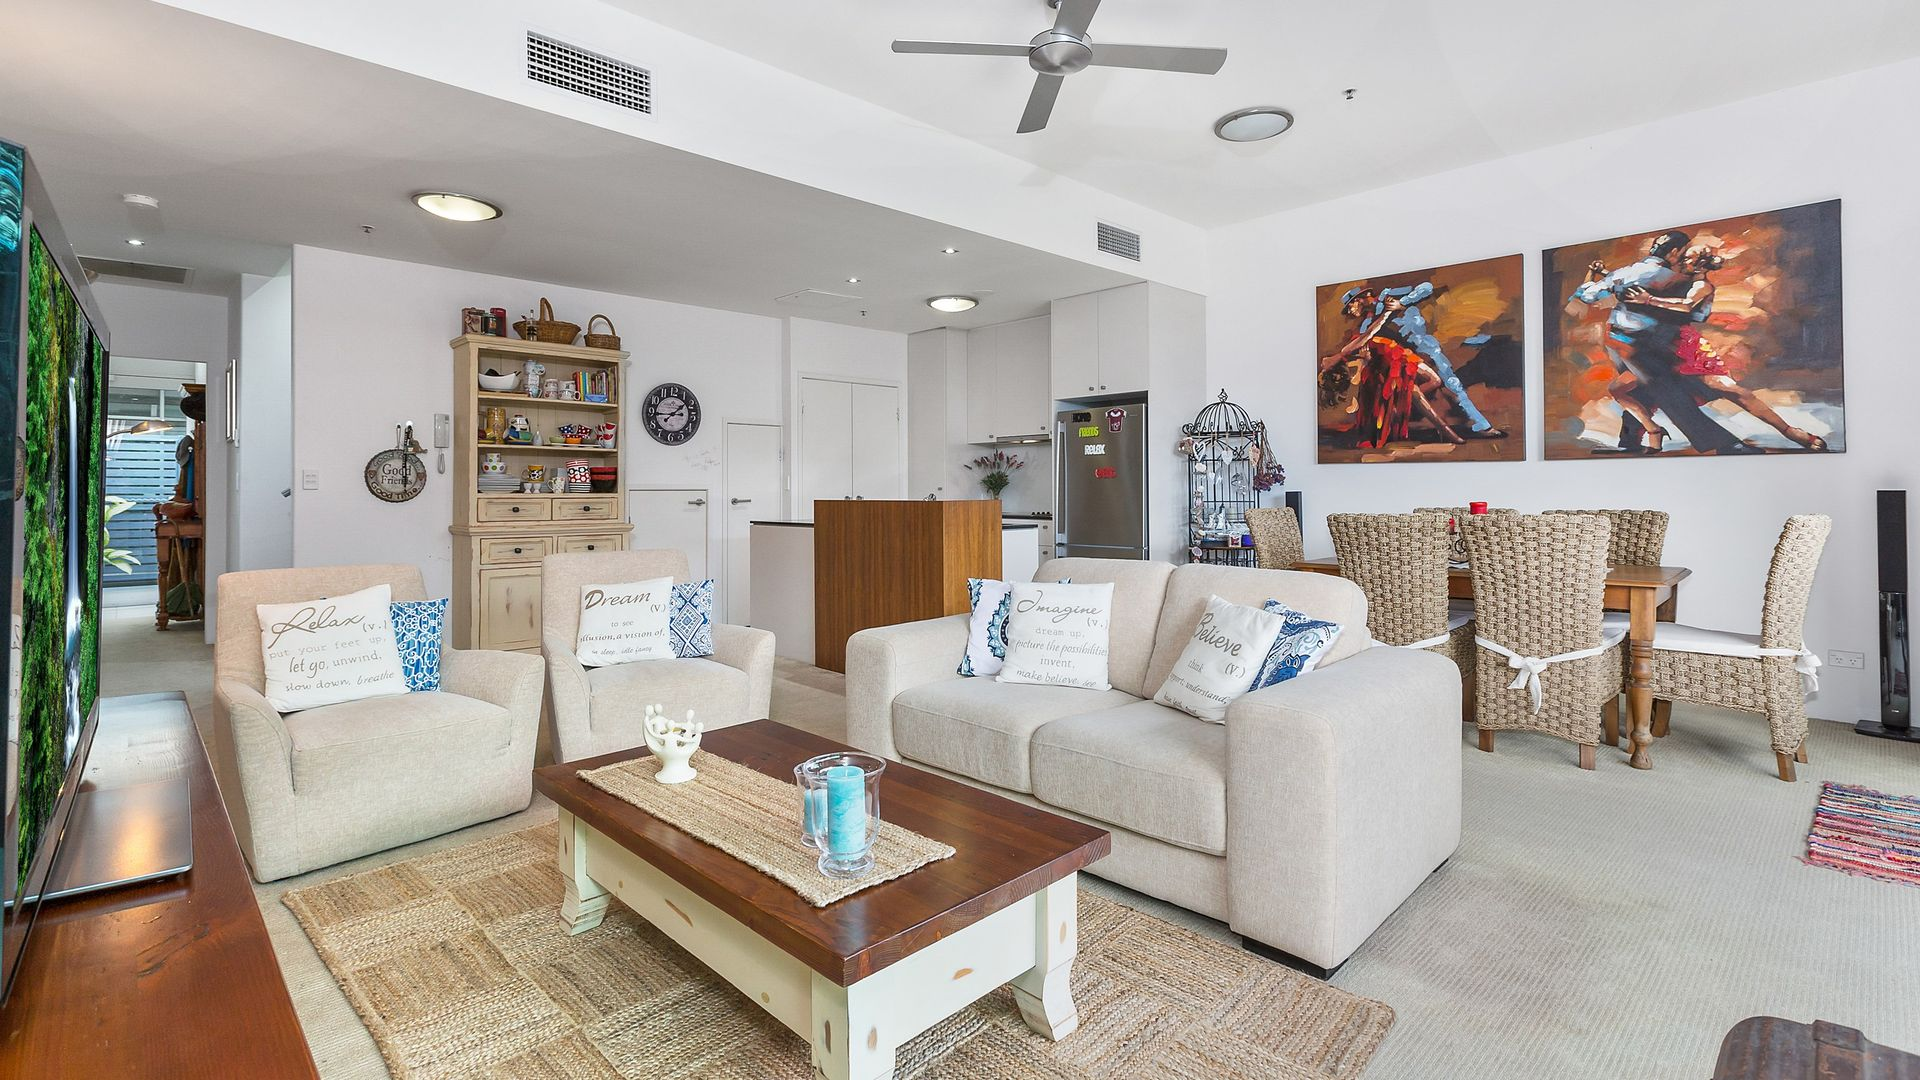 1017/14 - 20 Stuart Street, Tweed Ultima, Tweed Heads NSW 2485, Image 1